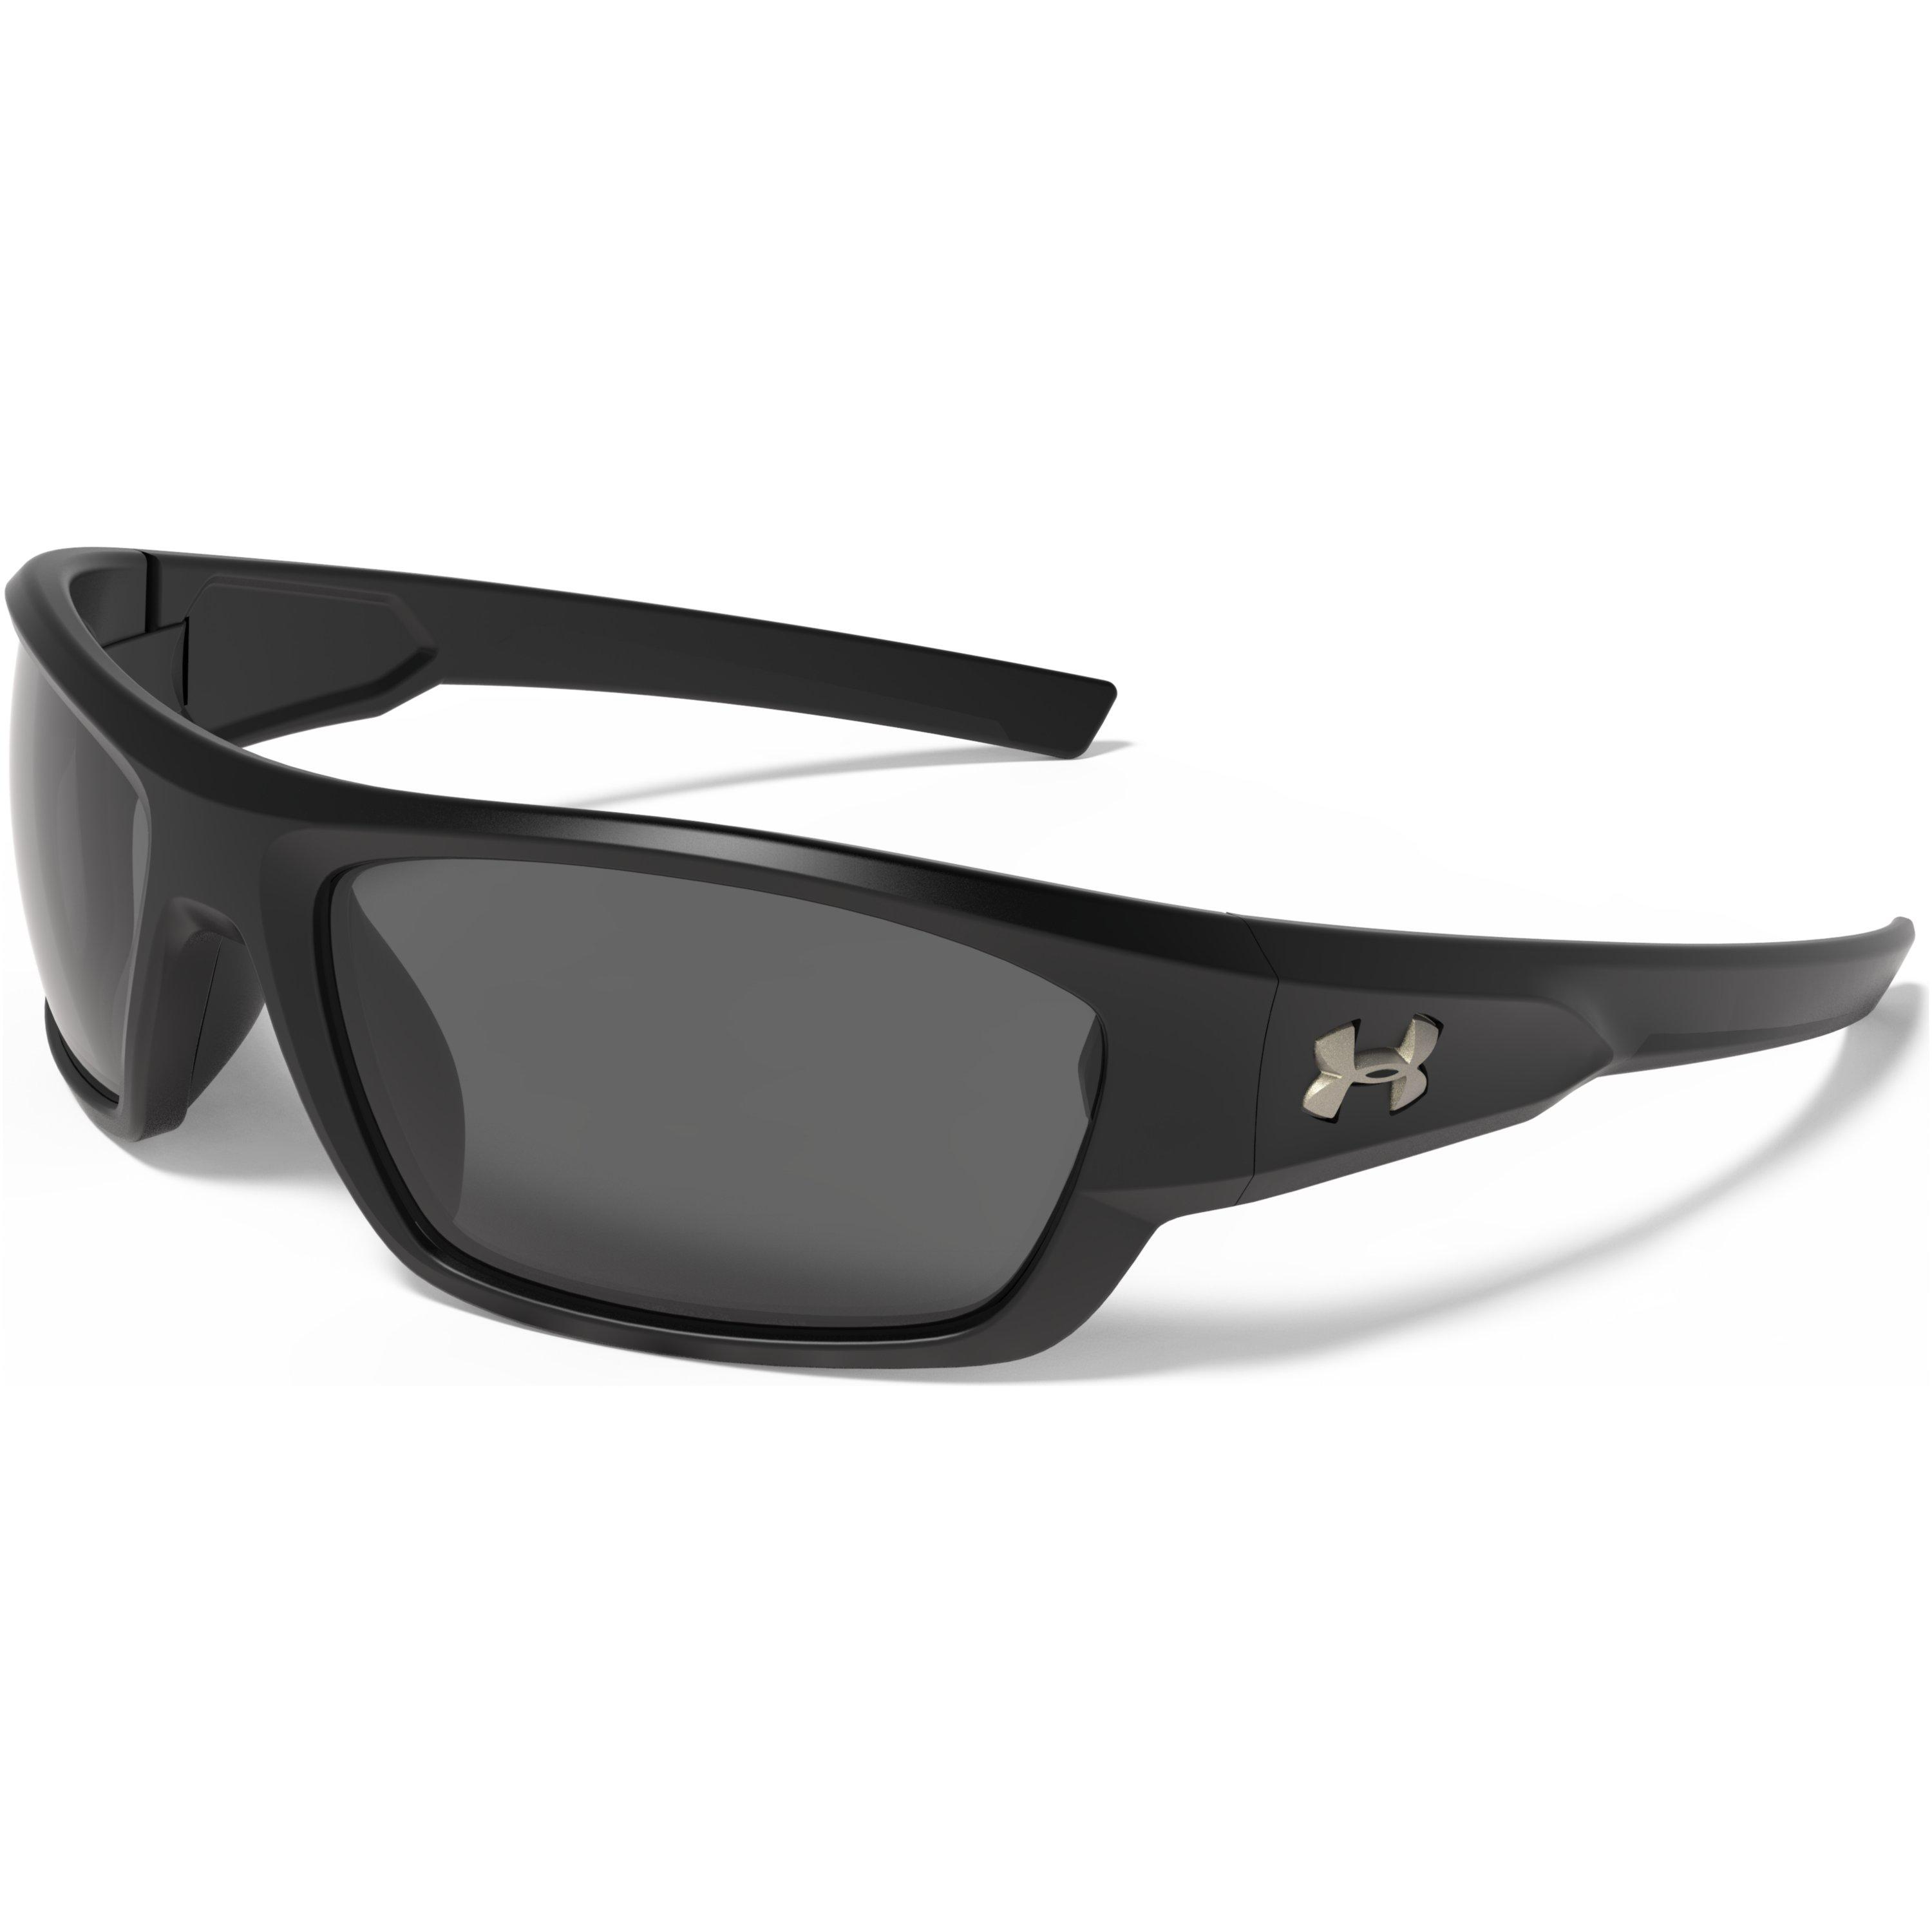 dc680776cc Lyst - Under Armour Ua Force Storm Polarized Sunglasses in Black for ...